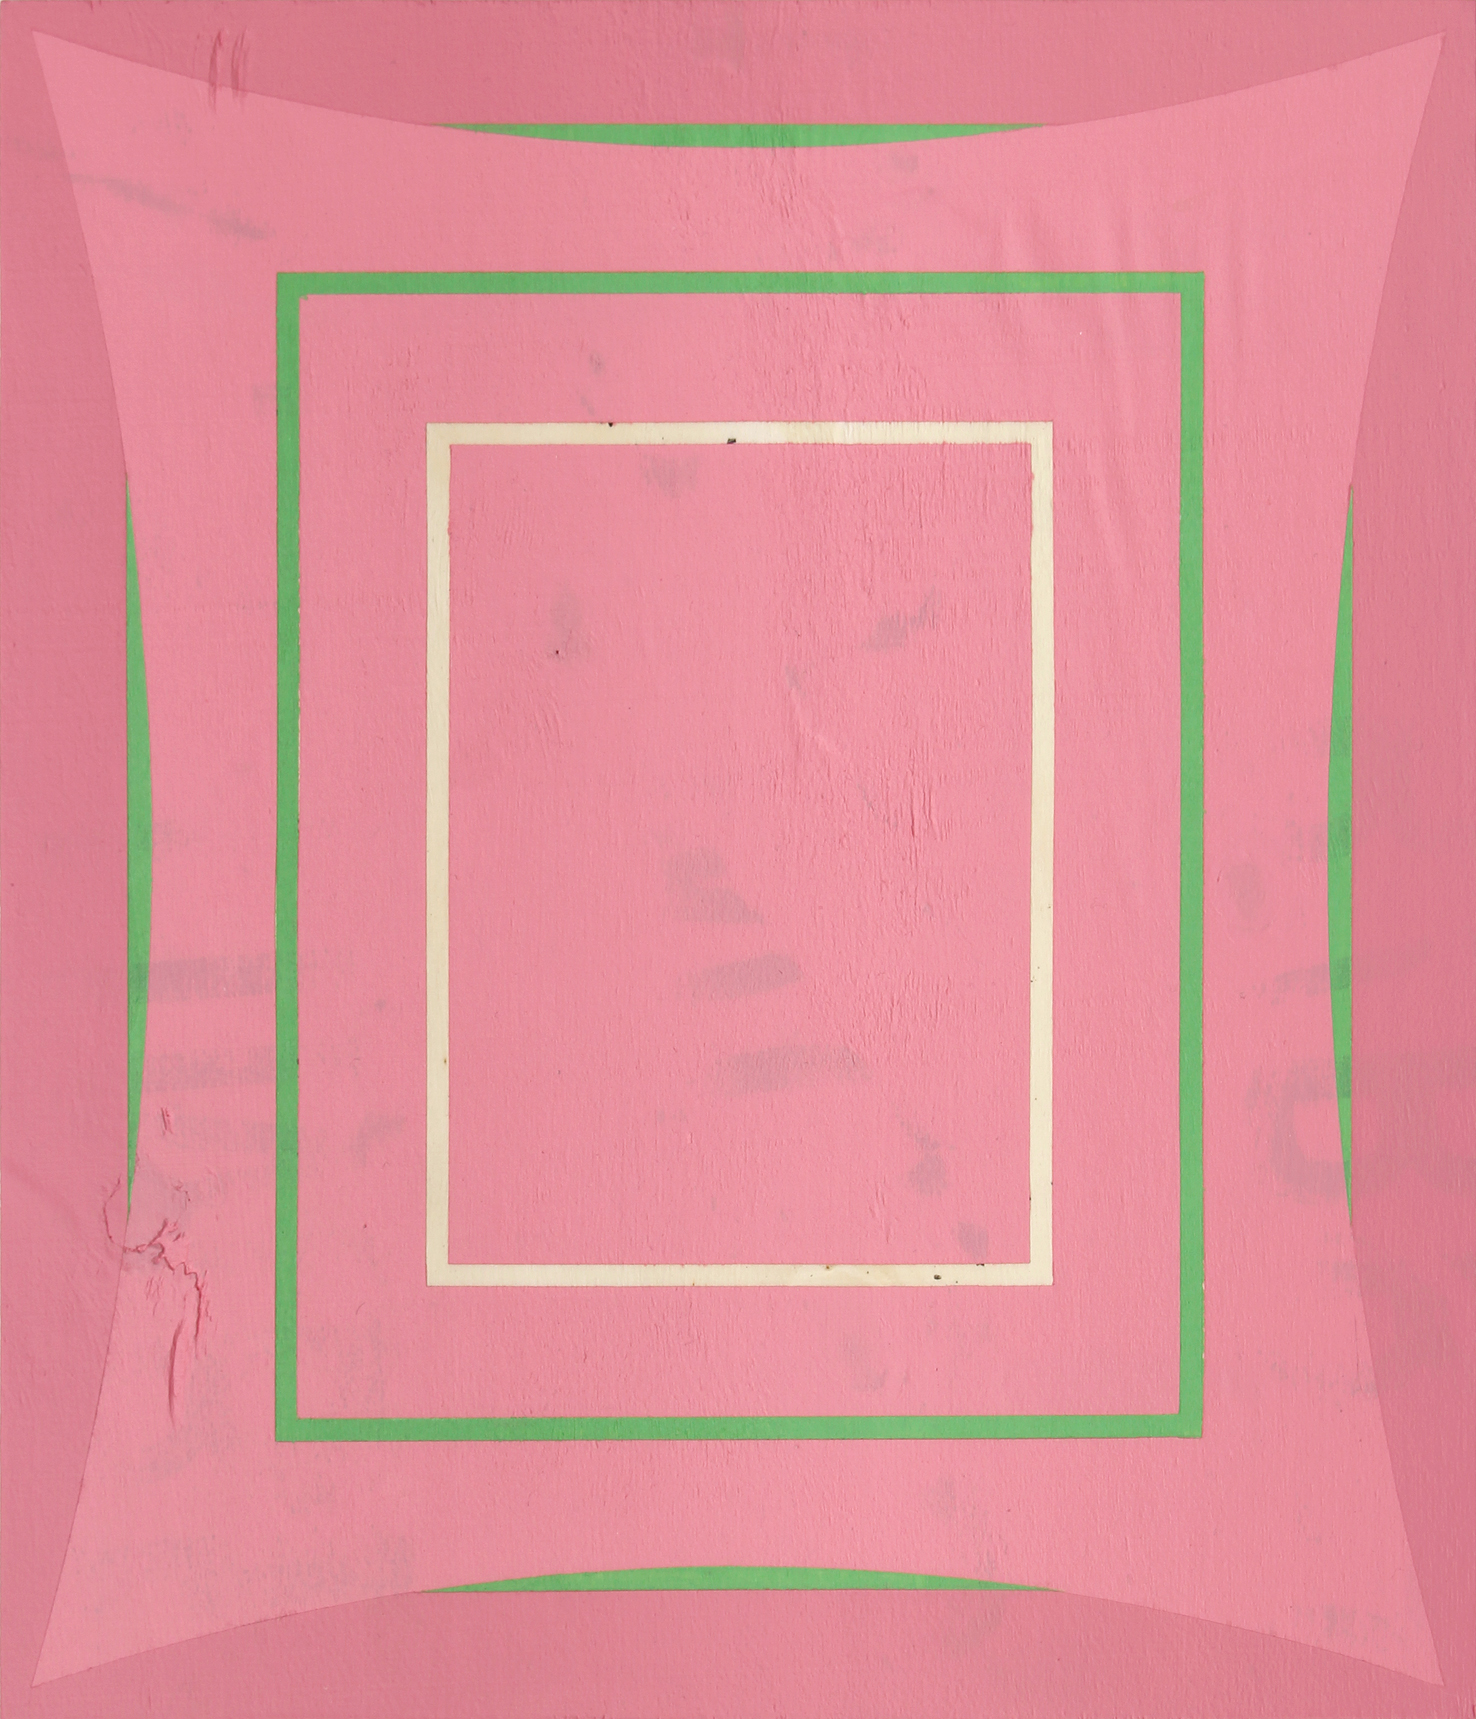 Untitled (Pink Green)